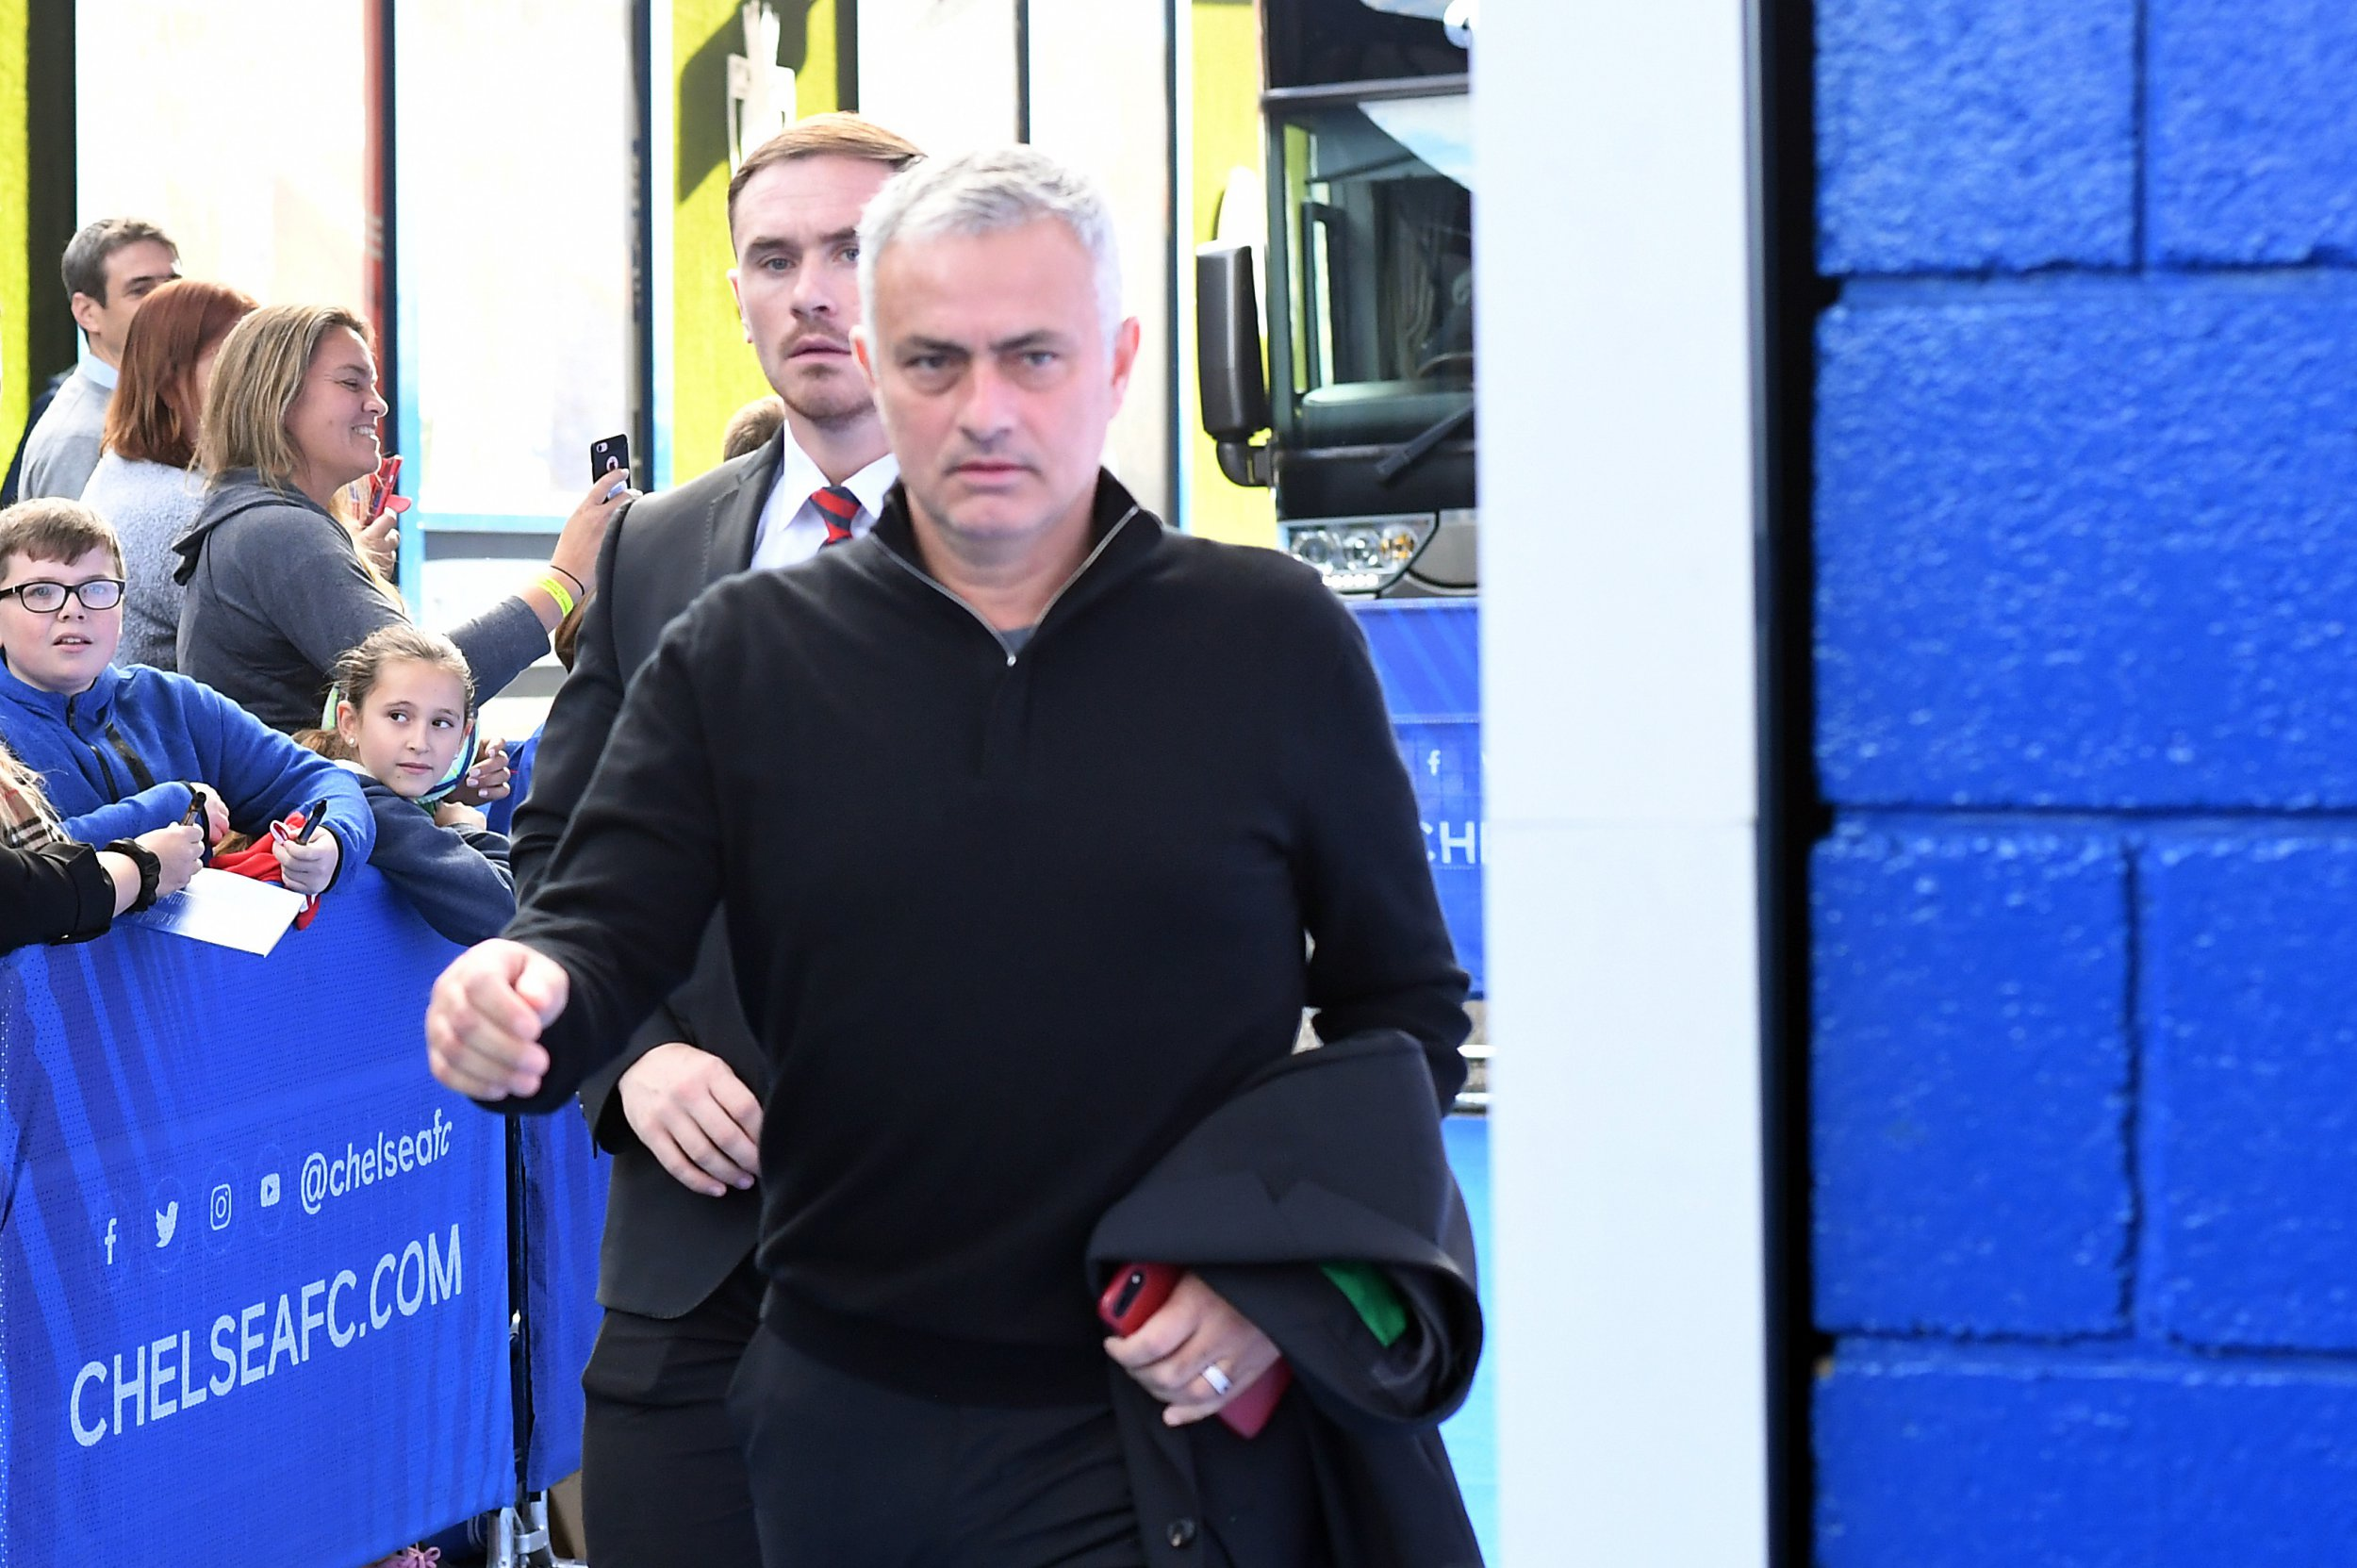 epa07106476 Manchester United manager, Jose Mourinho arrives for the English Premier League soccer match between Chelsea and Manchester United at Stamford Bridge in London, Britain, 20 October 2018. EPA/FACUNDO ARRIZABALAGA EDITORIAL USE ONLY. No use with unauthorized audio, video, data, fixture lists, club/league logos or 'live' services. Online in-match use limited to 75 images, no video emulation. No use in betting, games or single club/league/player publications